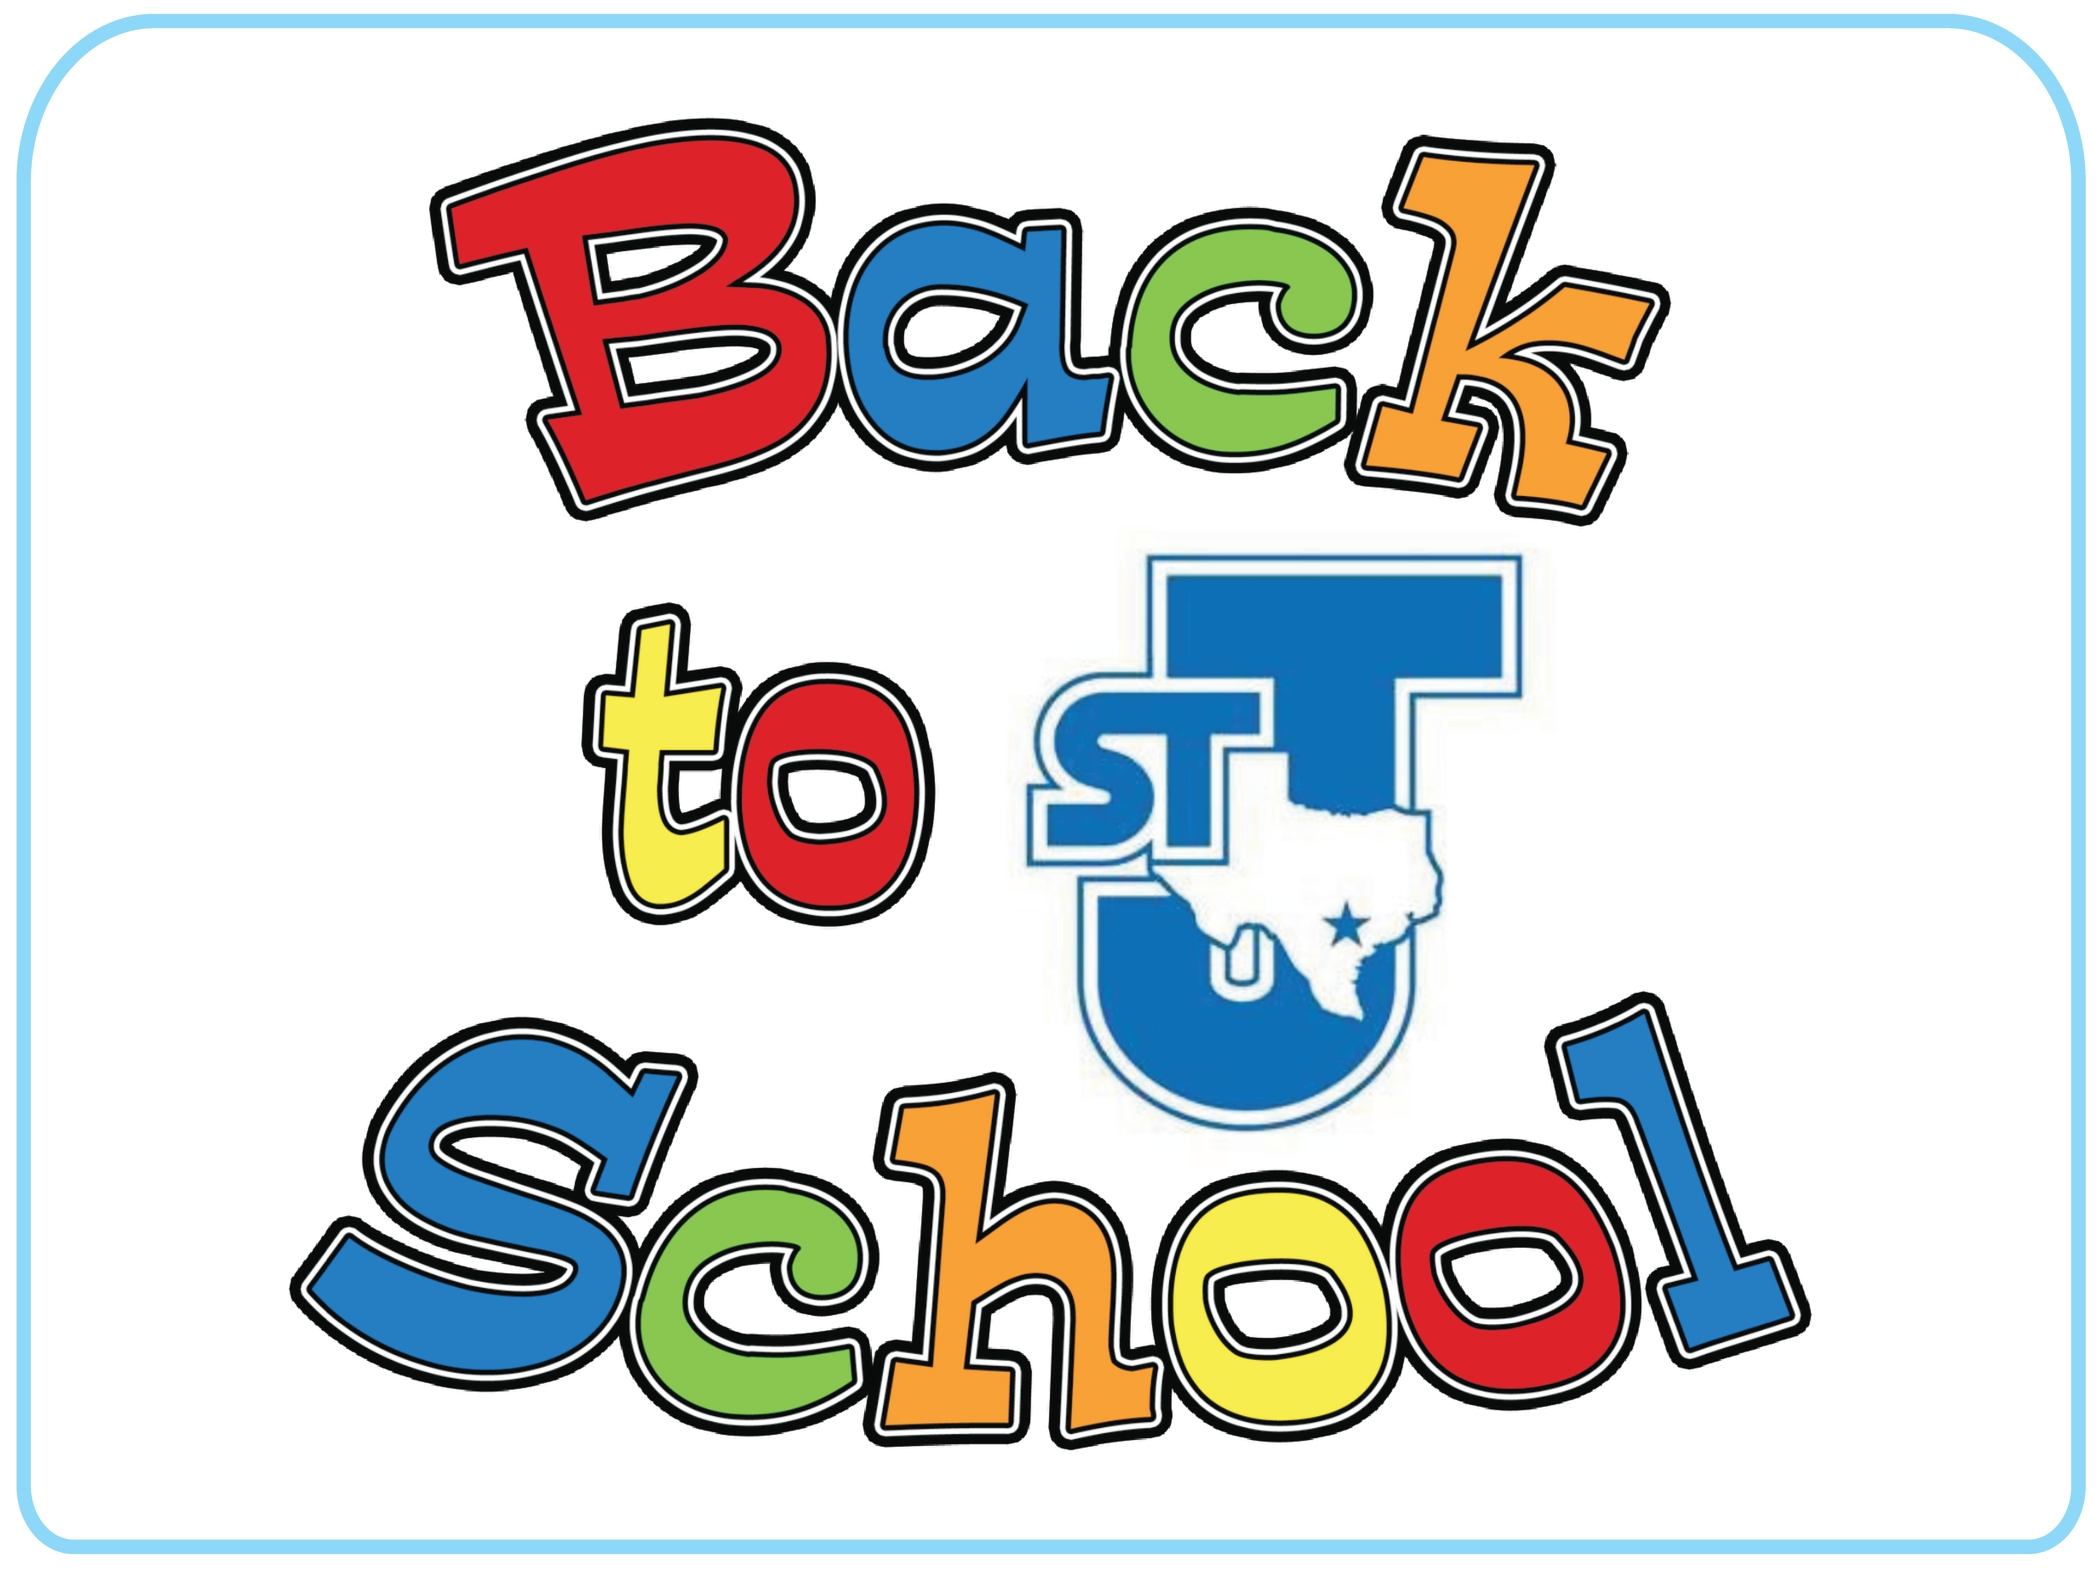 Back 20to 20school 20  20st. 20joseph 20high 20school